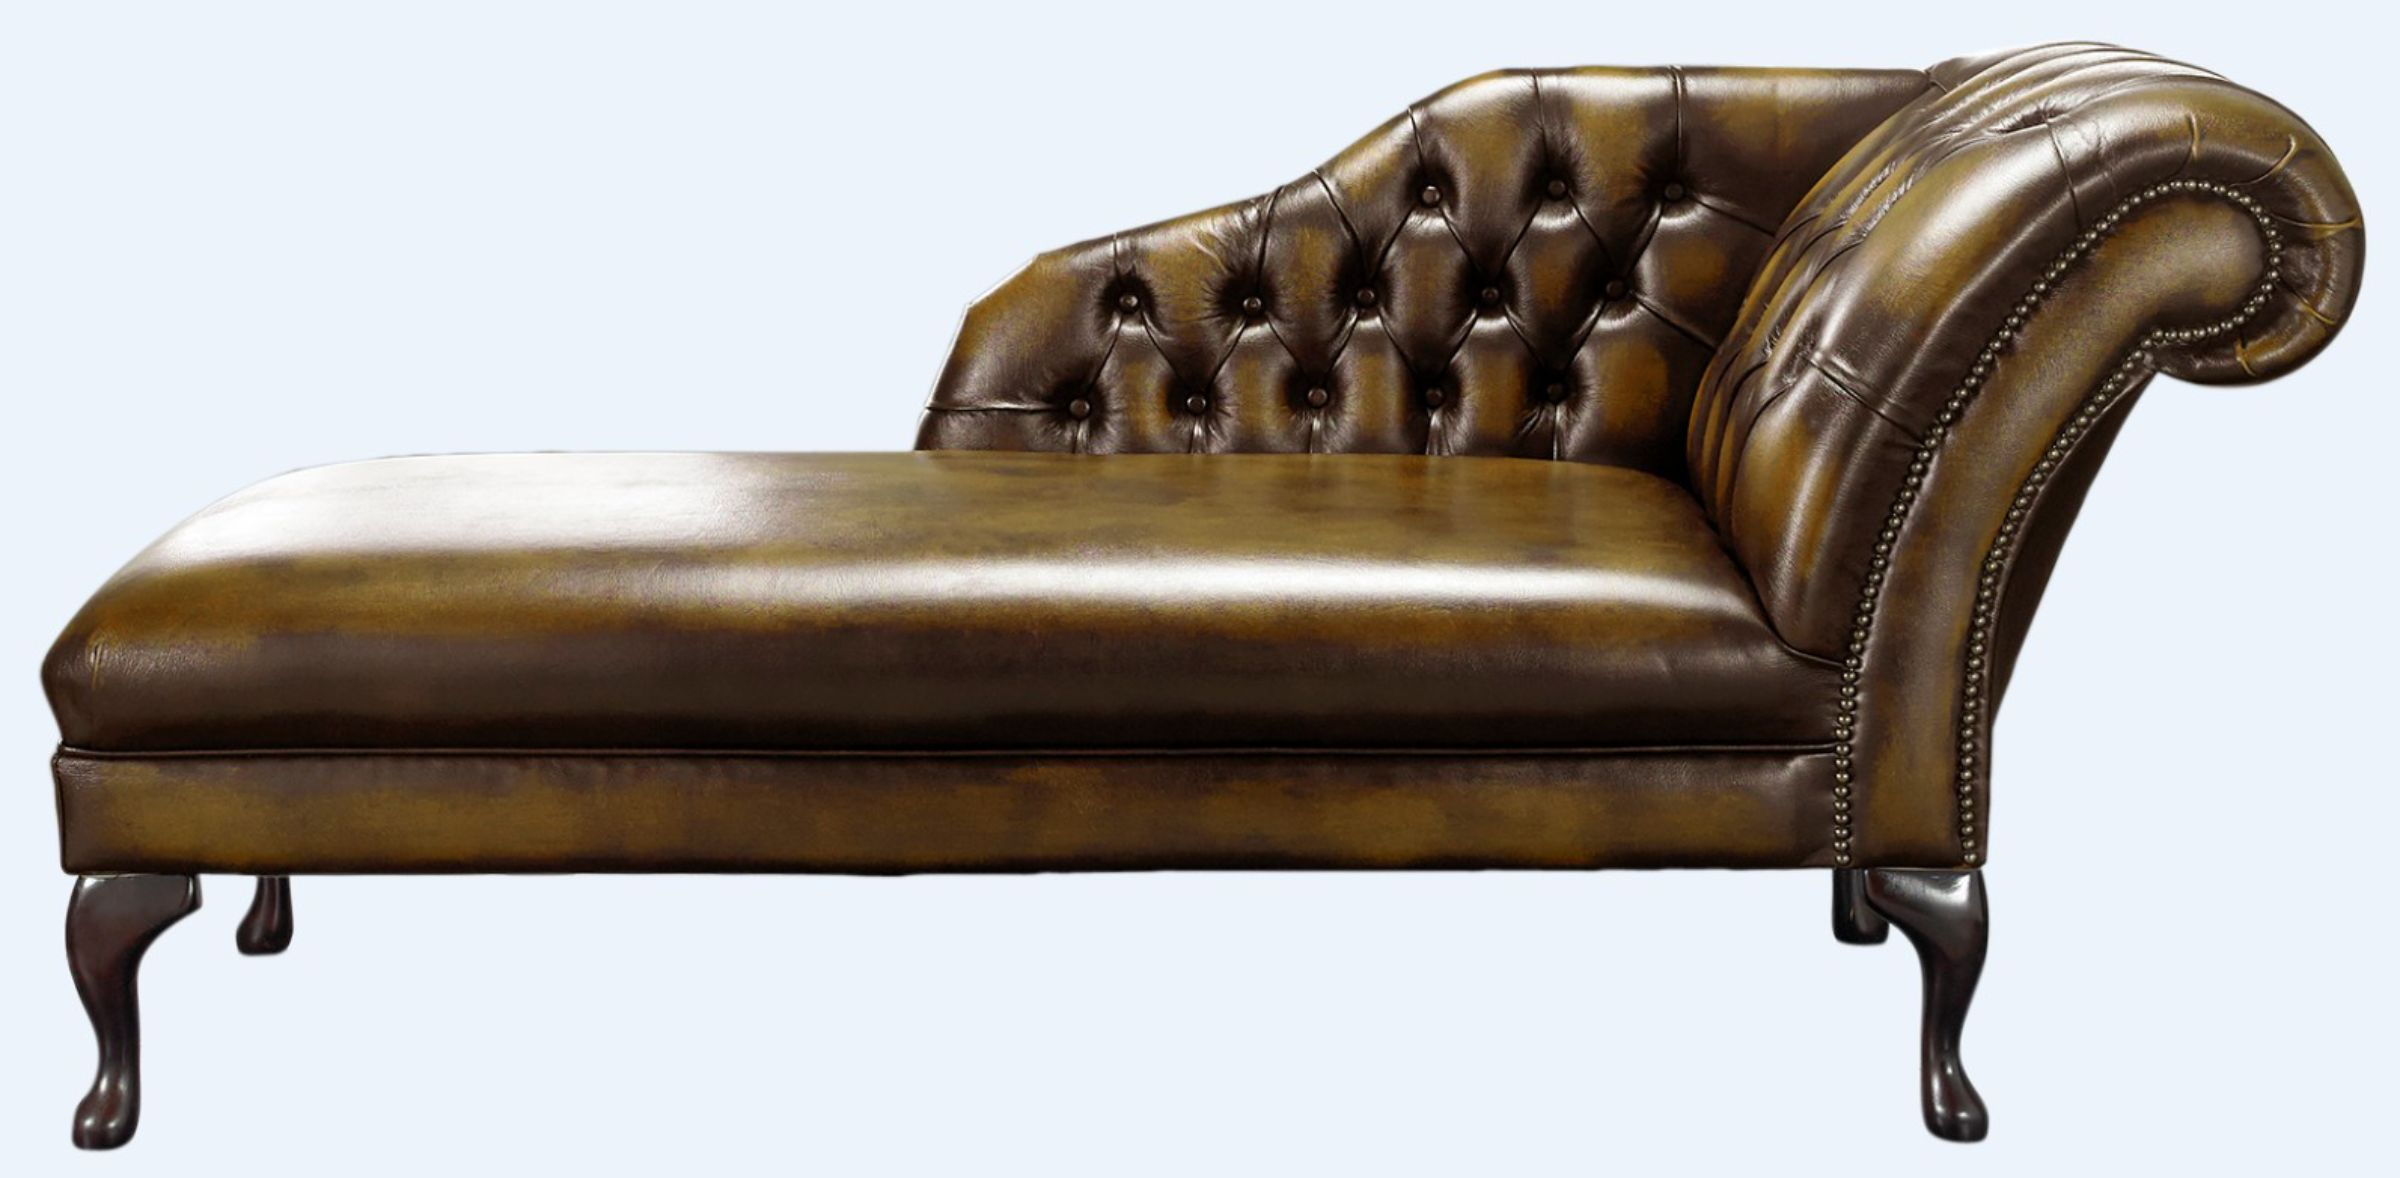 Gold Chesterfield Chaise Lounge Day Bed Designersofas4u